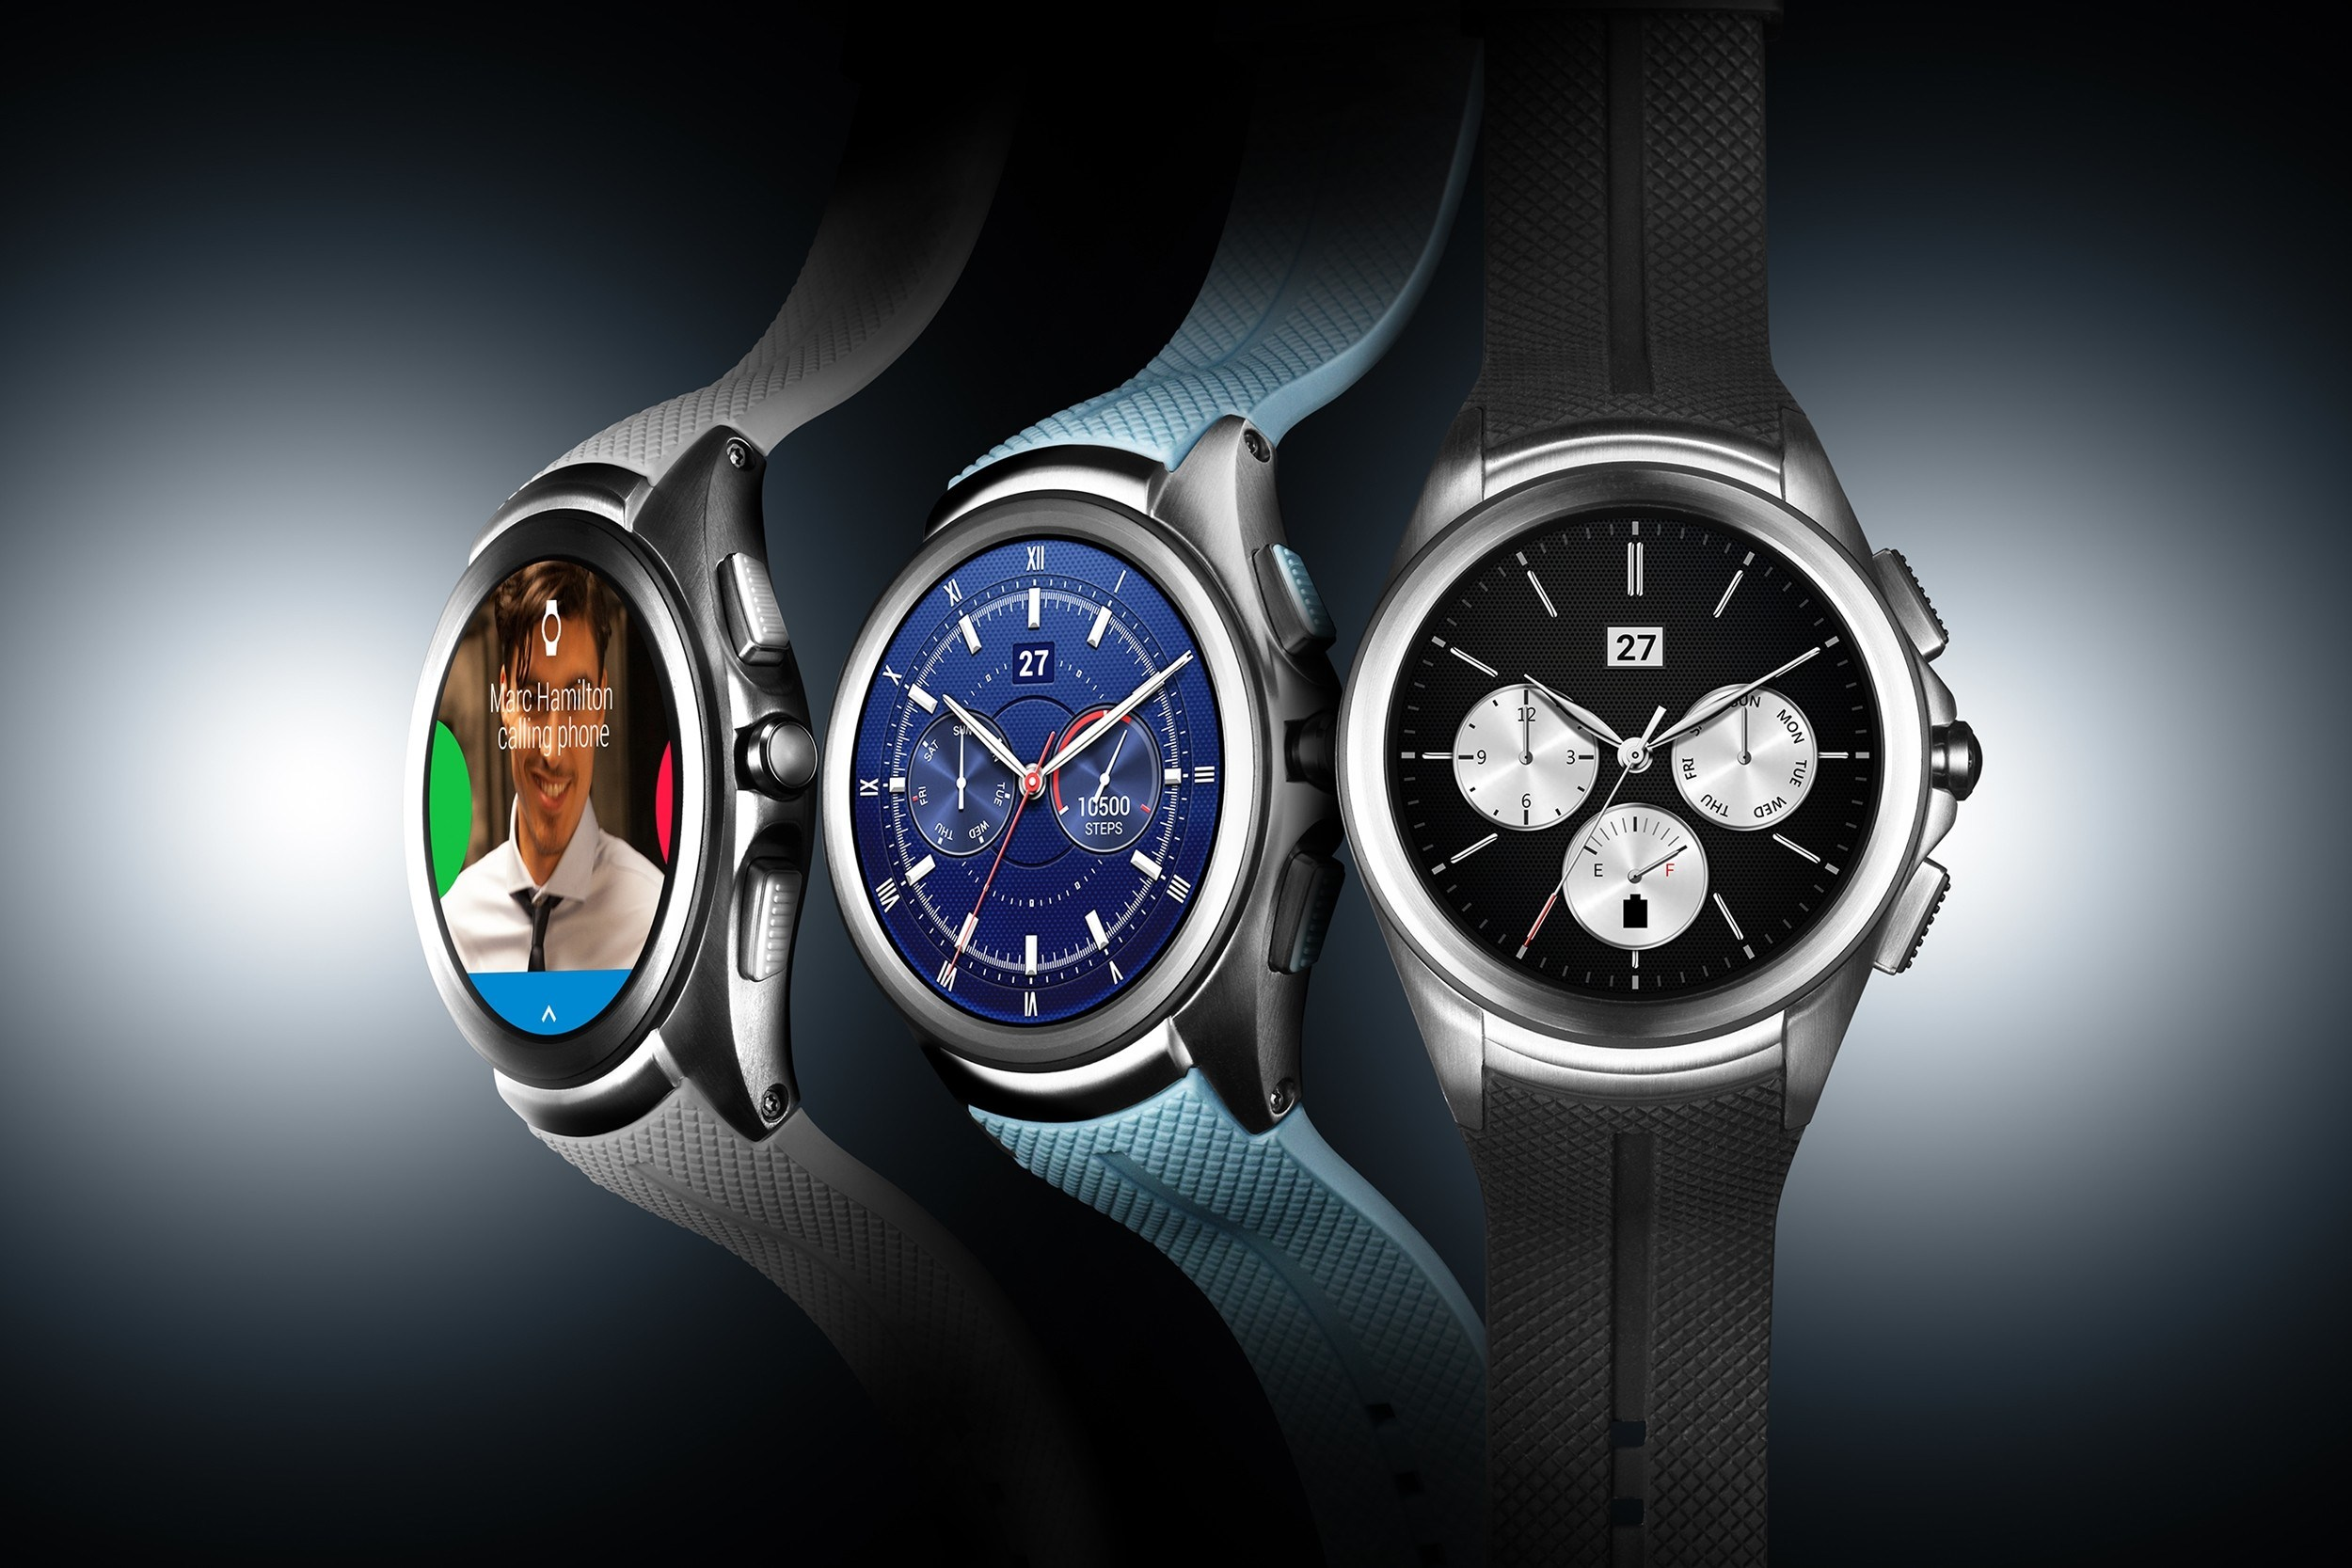 La LG Watch Urbane Second Edition arrive en Europe